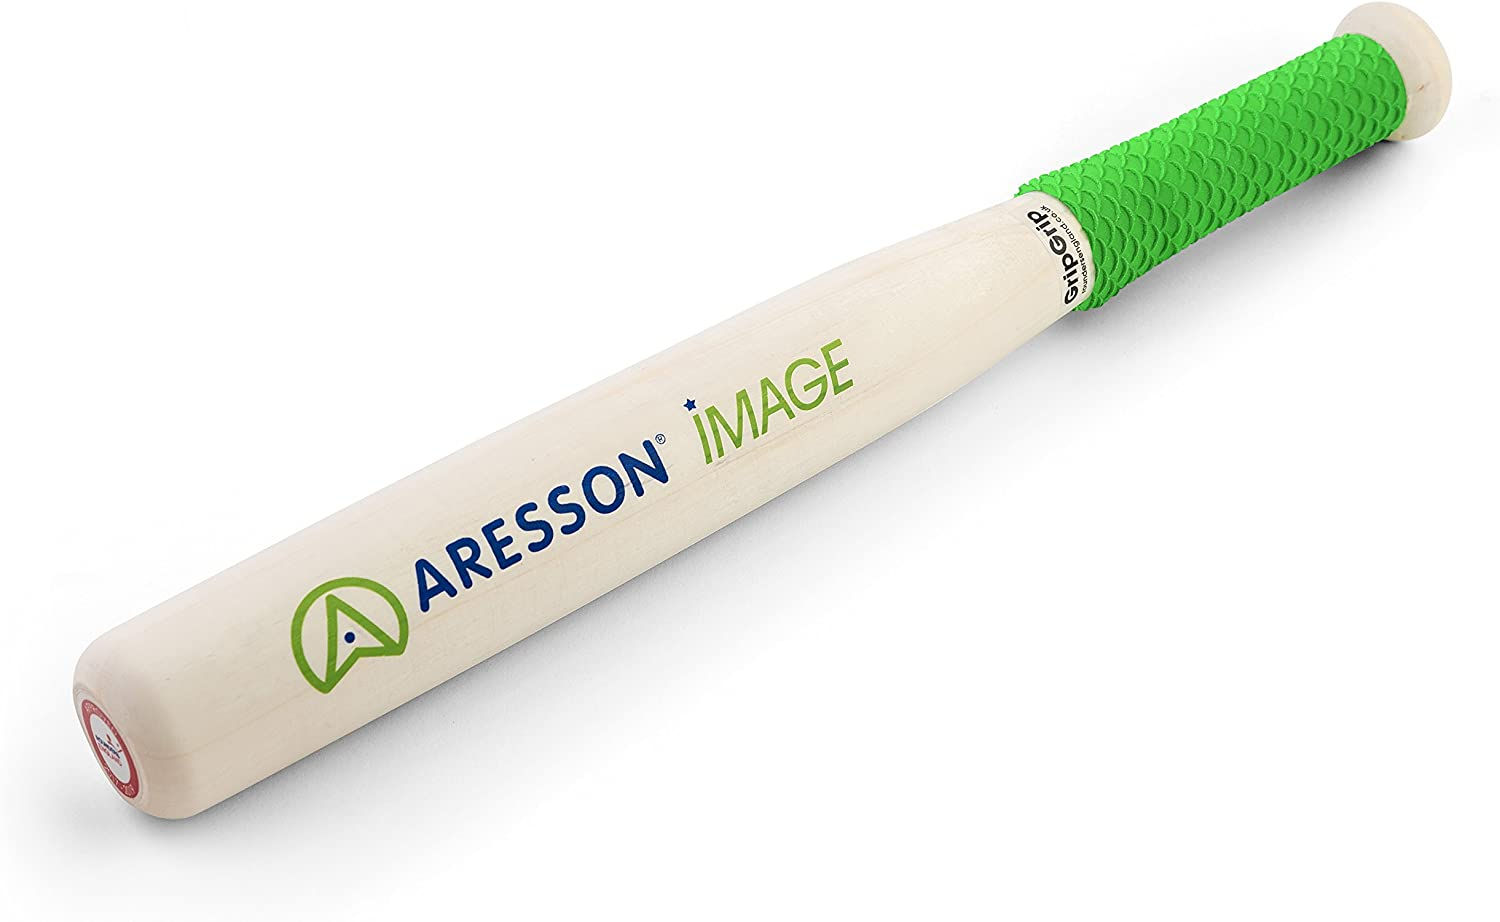 Aresson IMAGE Rounders Bat Wooden Bat